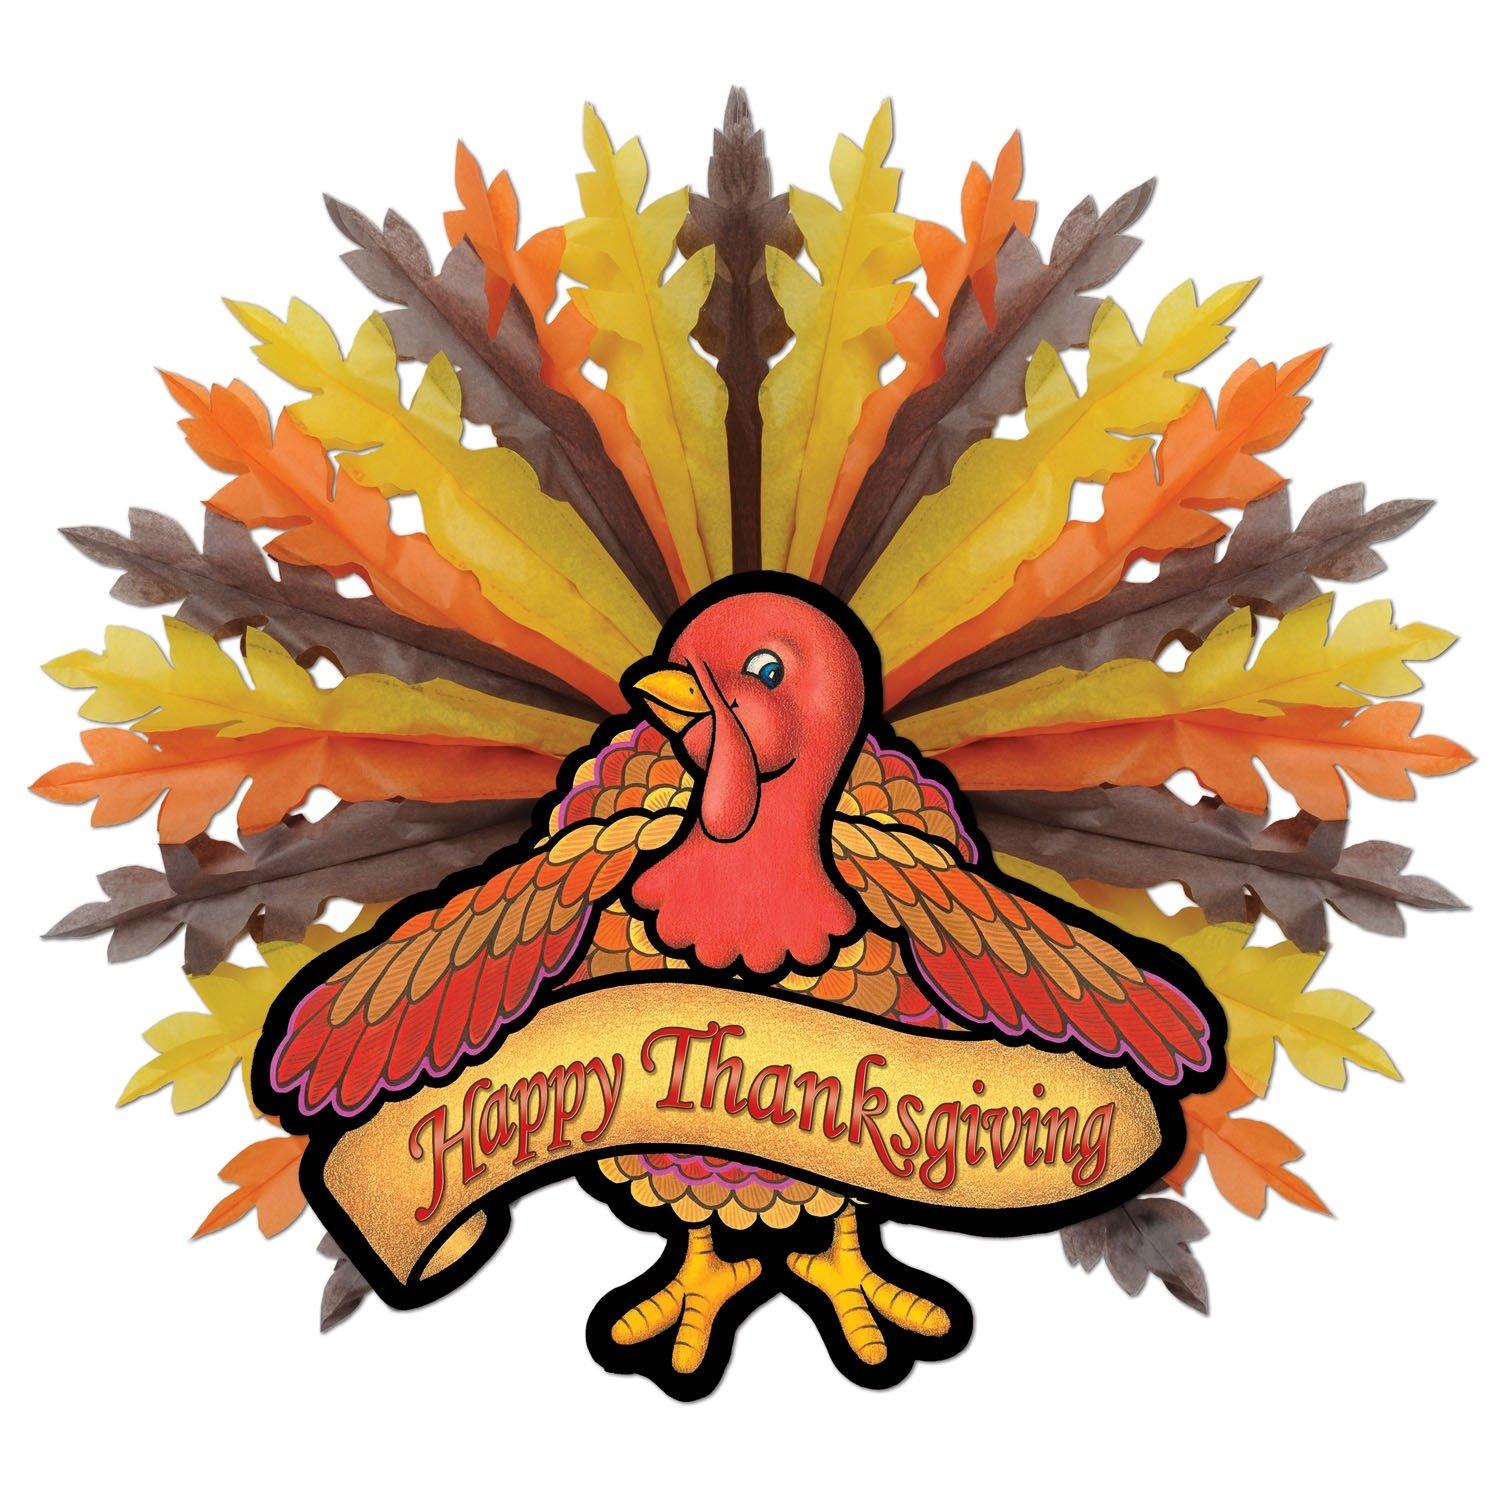 Beistle S99160AZ2 Thanksgiving Turkey Hanging Decorations 31 Pack of 2